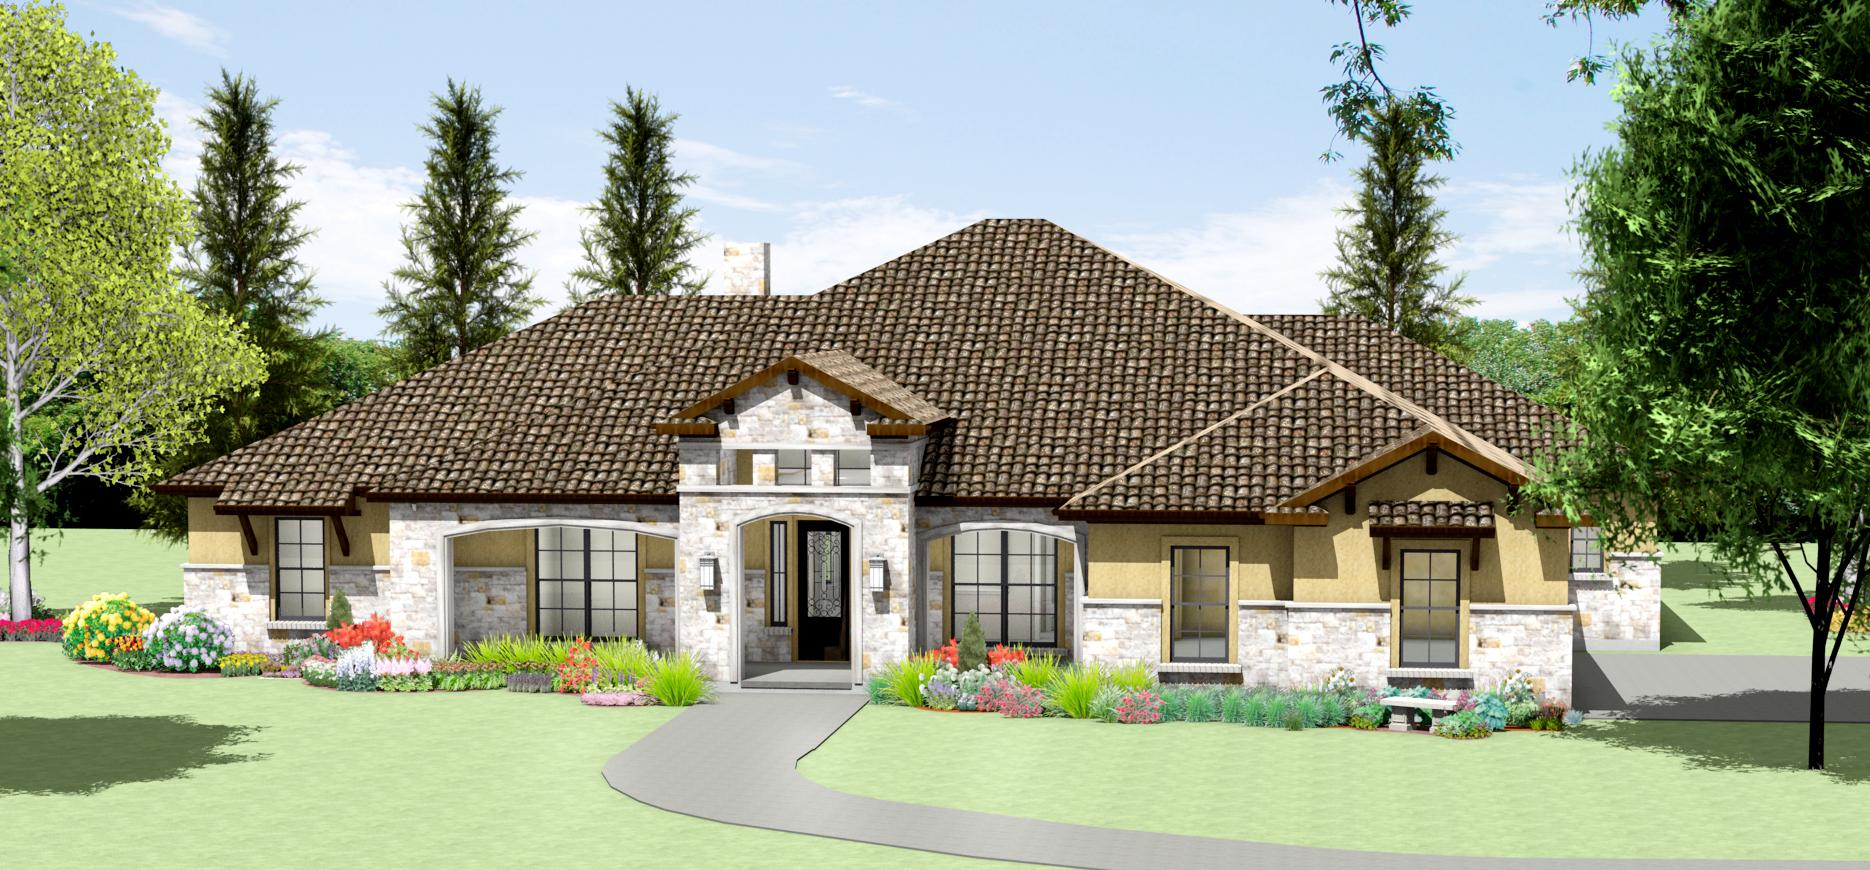 S3450r Texas Tuscan Design Texas House Plans Over 700 Proven